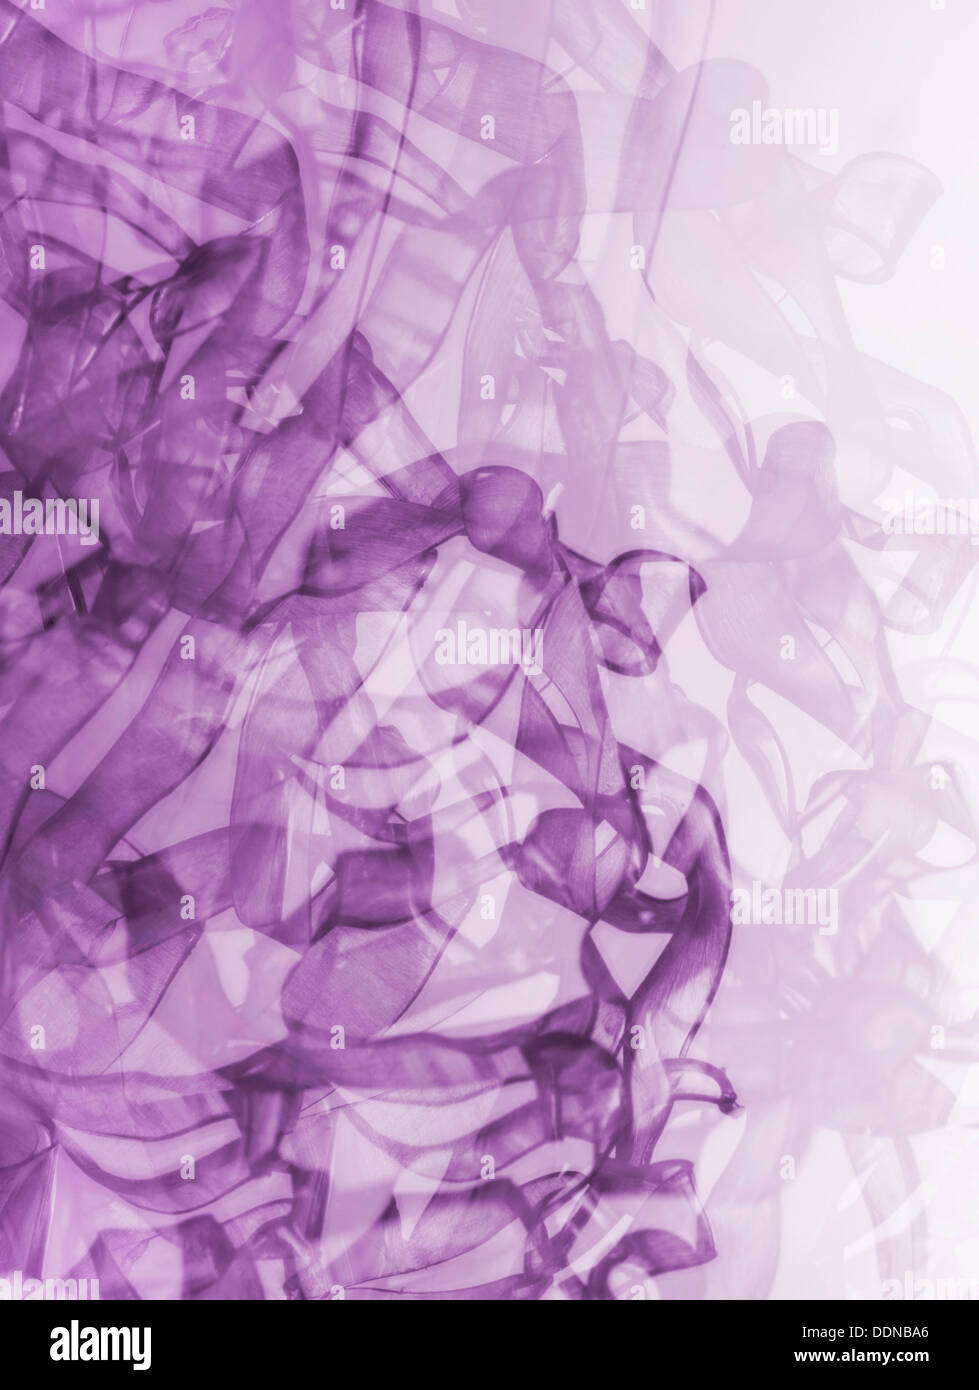 Abstract purple pattern - Stock Image